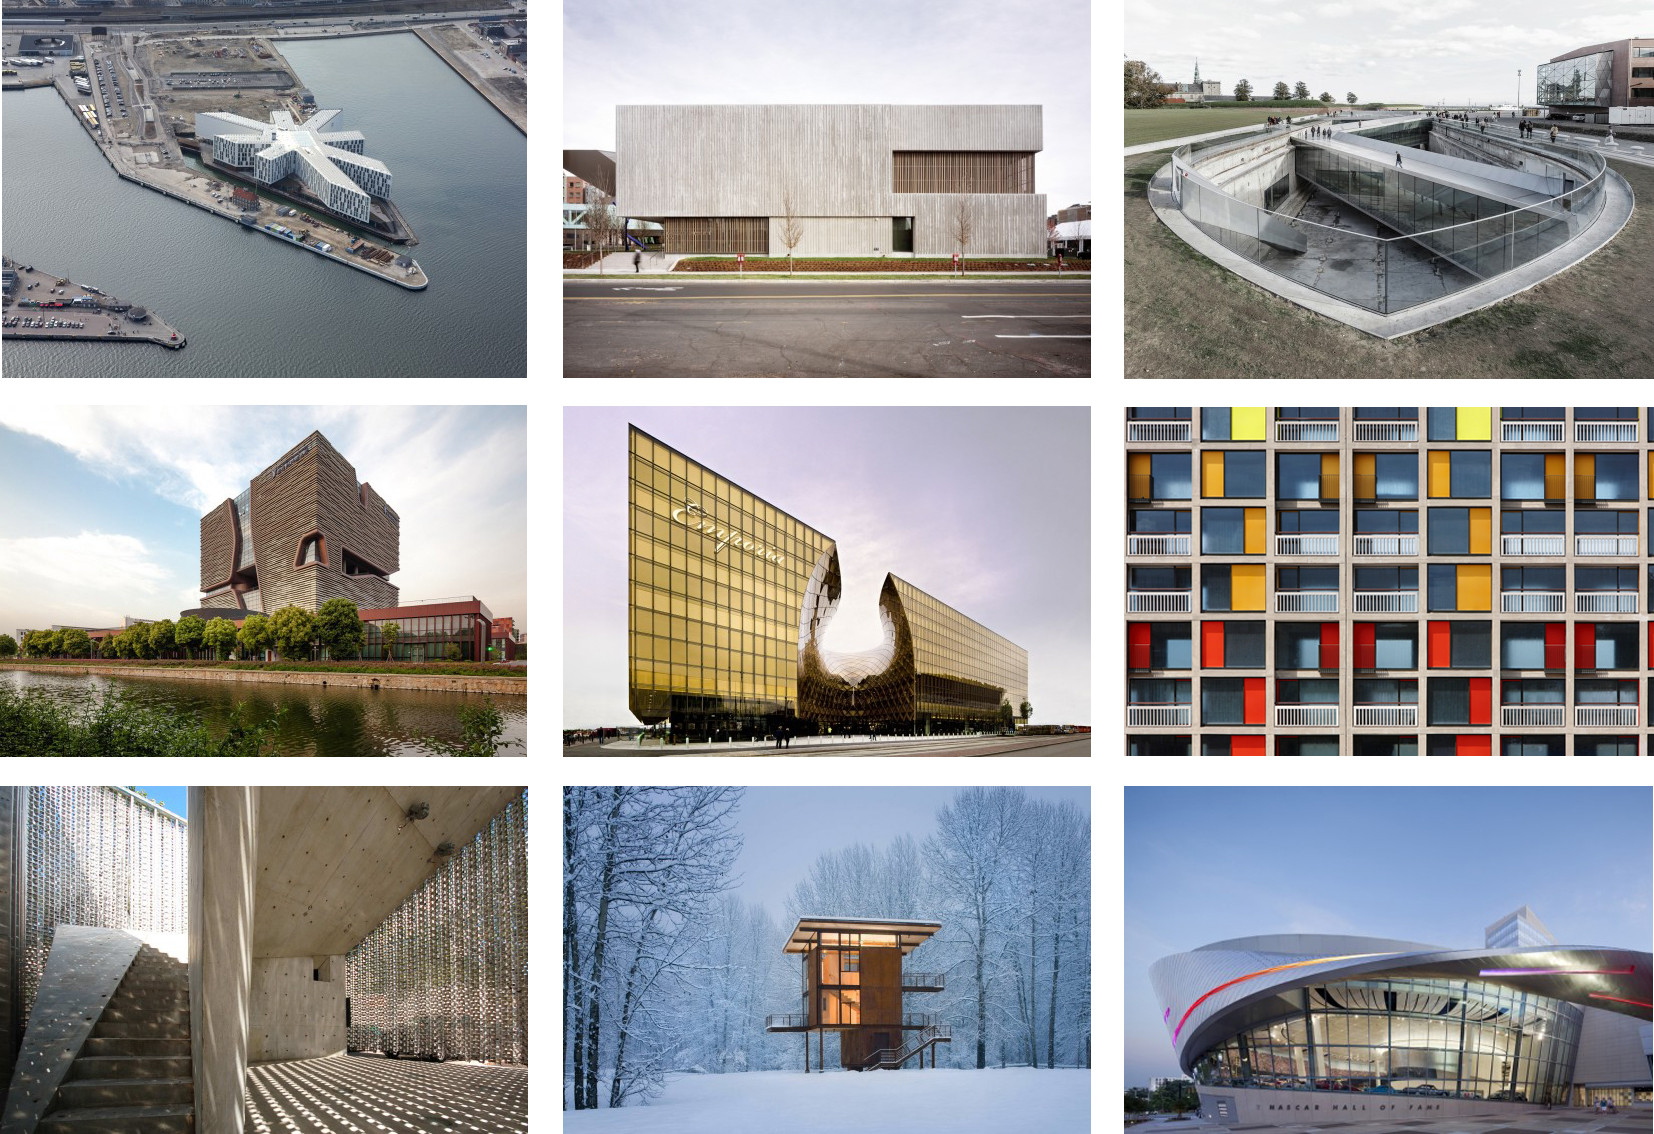 Aedas, BIG, 3XN, & Ten Others Named to Van Alen Institute's International Council of Architecture & Urban Design, Works (from upper left to right) by 3XN,  Allied Works Architecture, BIG, (mid left to right) Aedas, Windgardhs, Studio Egret West, (bottom left to right) 5468796 Architecture,  Olson Kundig Architects, and Pei Cobb Freed & Partners. All firms involved in the Van Alen Institute's International Council